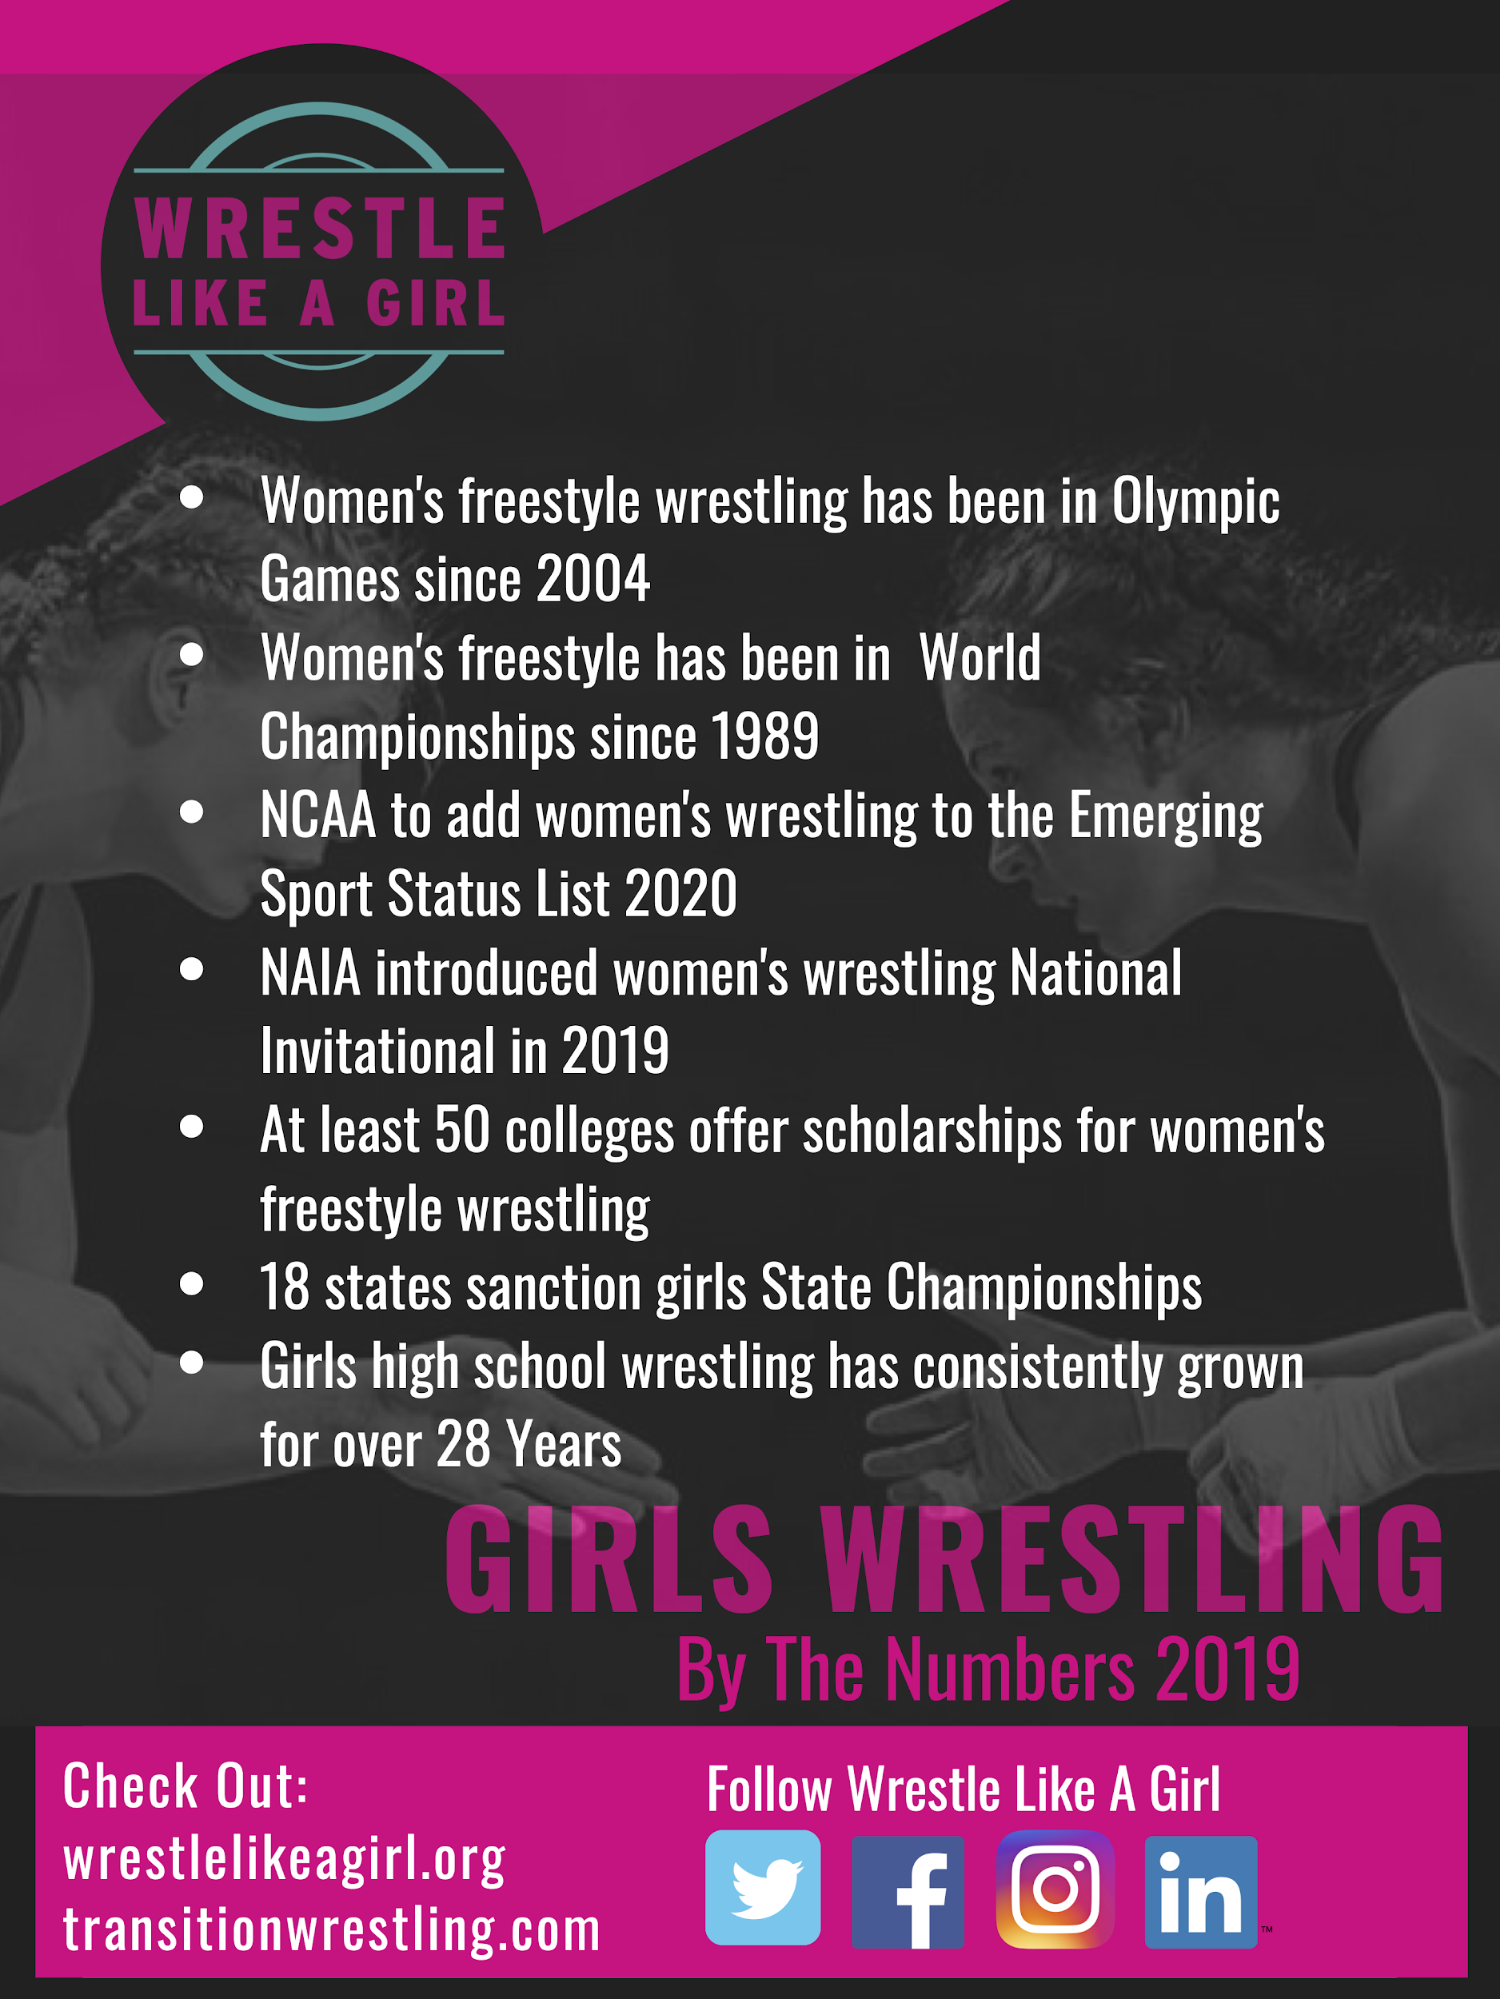 Girls wrestling by the numbers